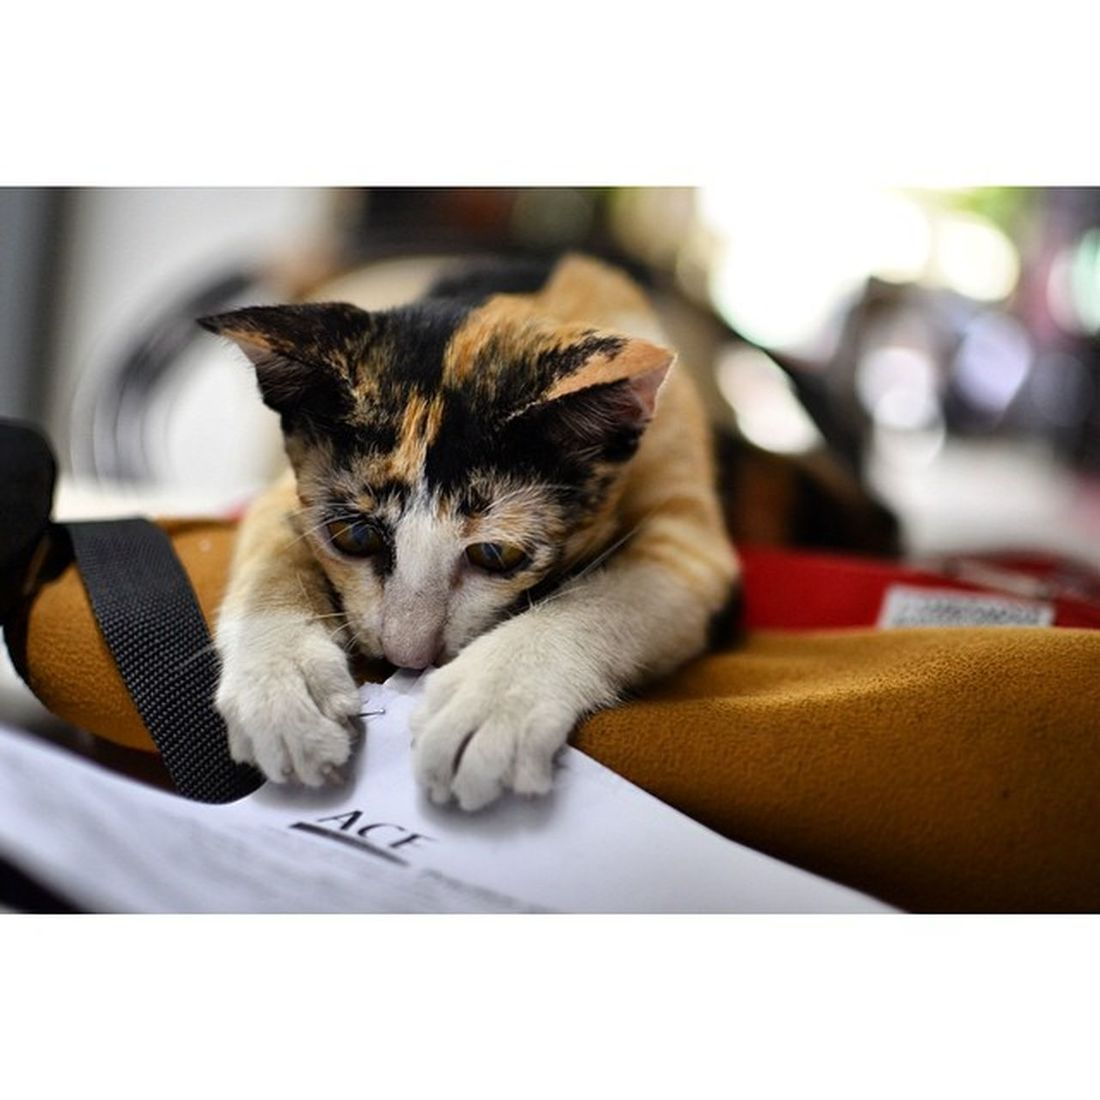 Can't reviewing for my exam because the cat is trying to eat my lesson sheet! XDD 😂😂 Nikon